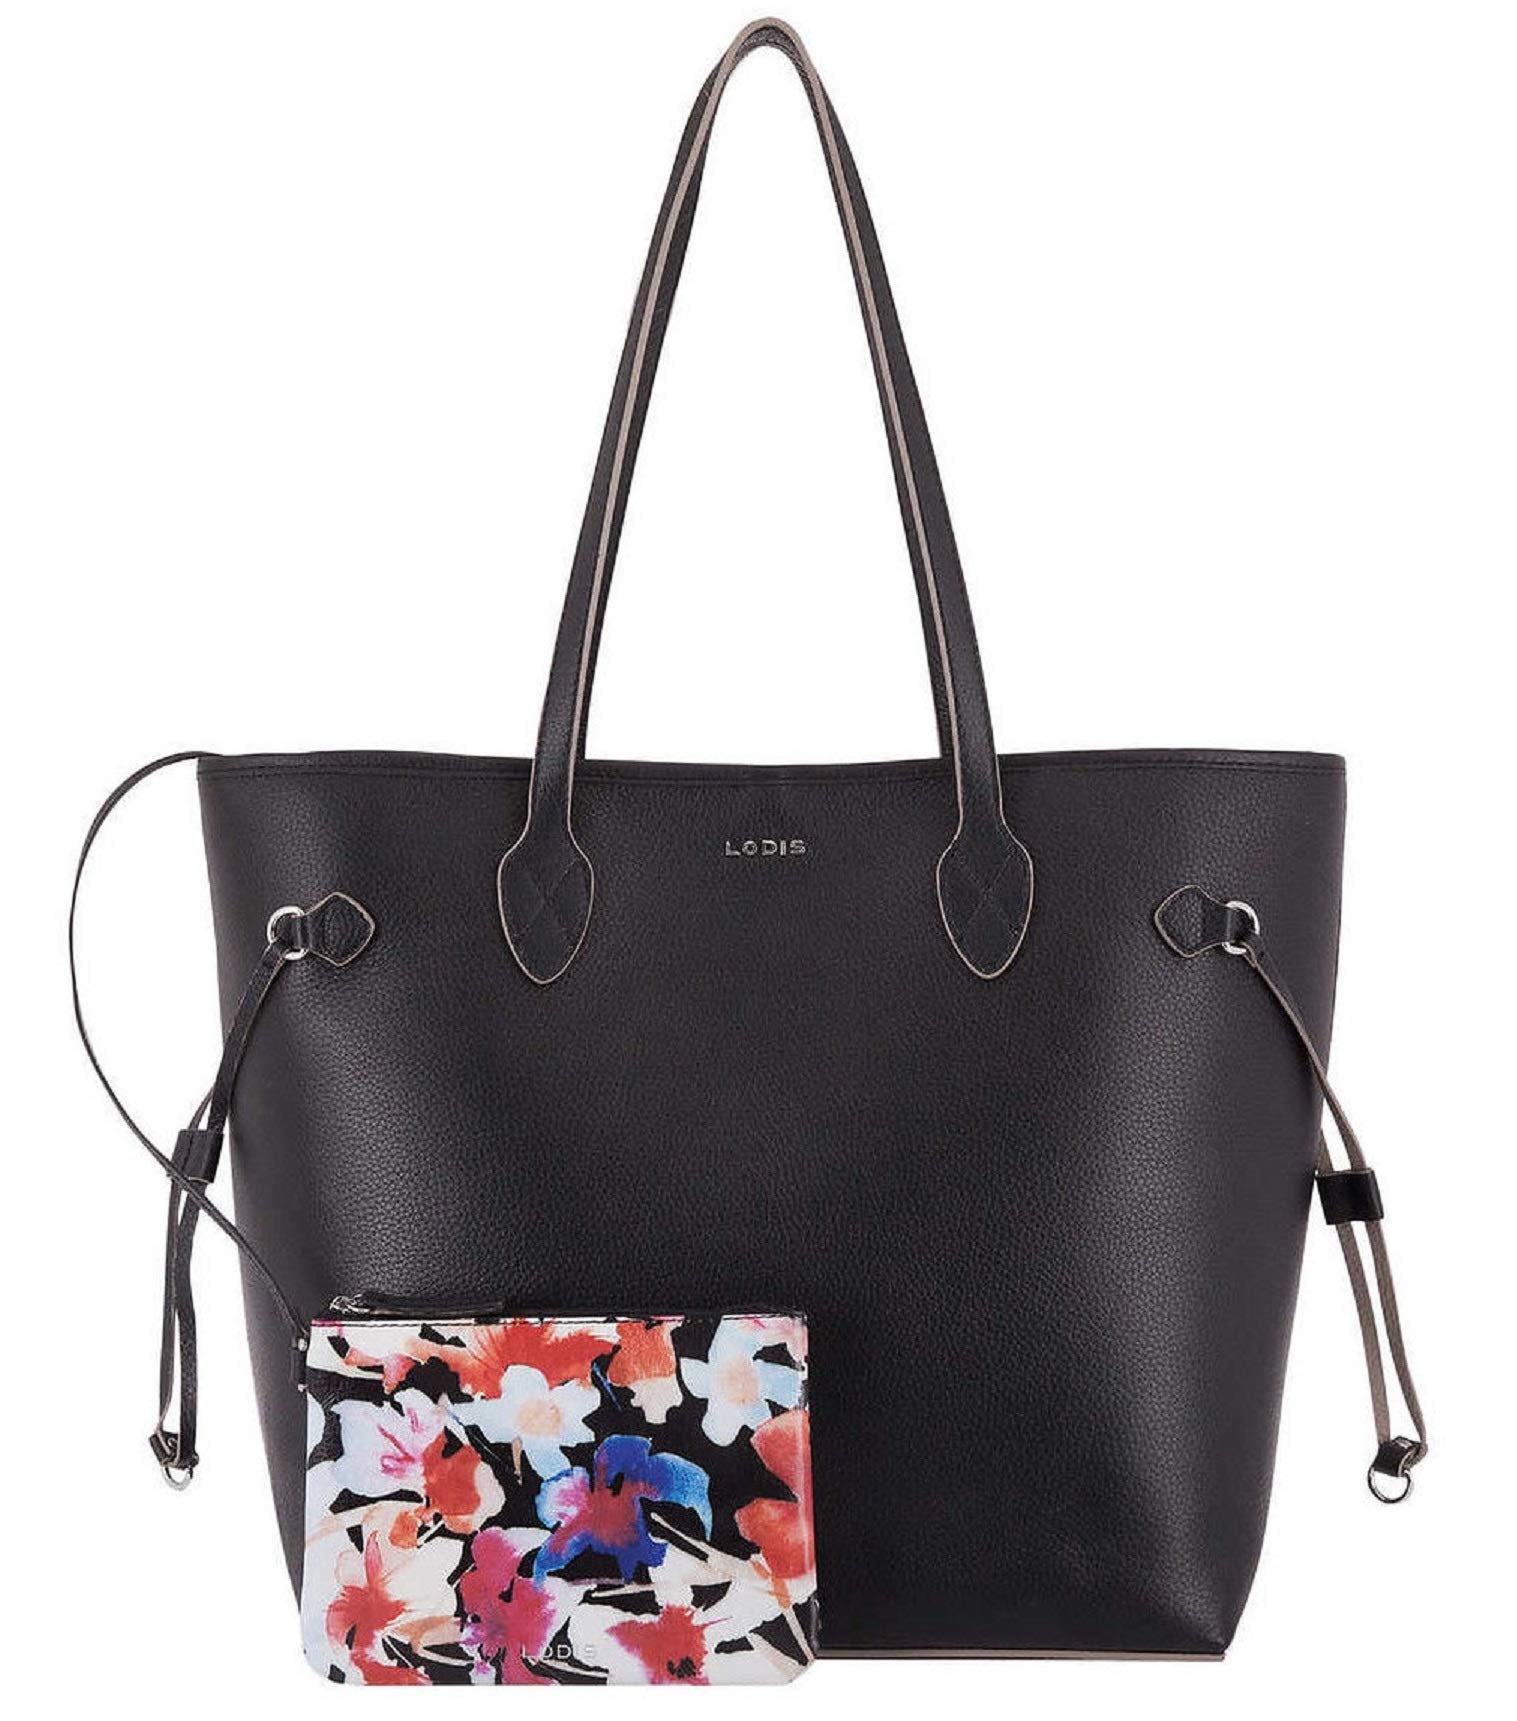 Lodis Bliss Leather Tote with Wristlet, Black